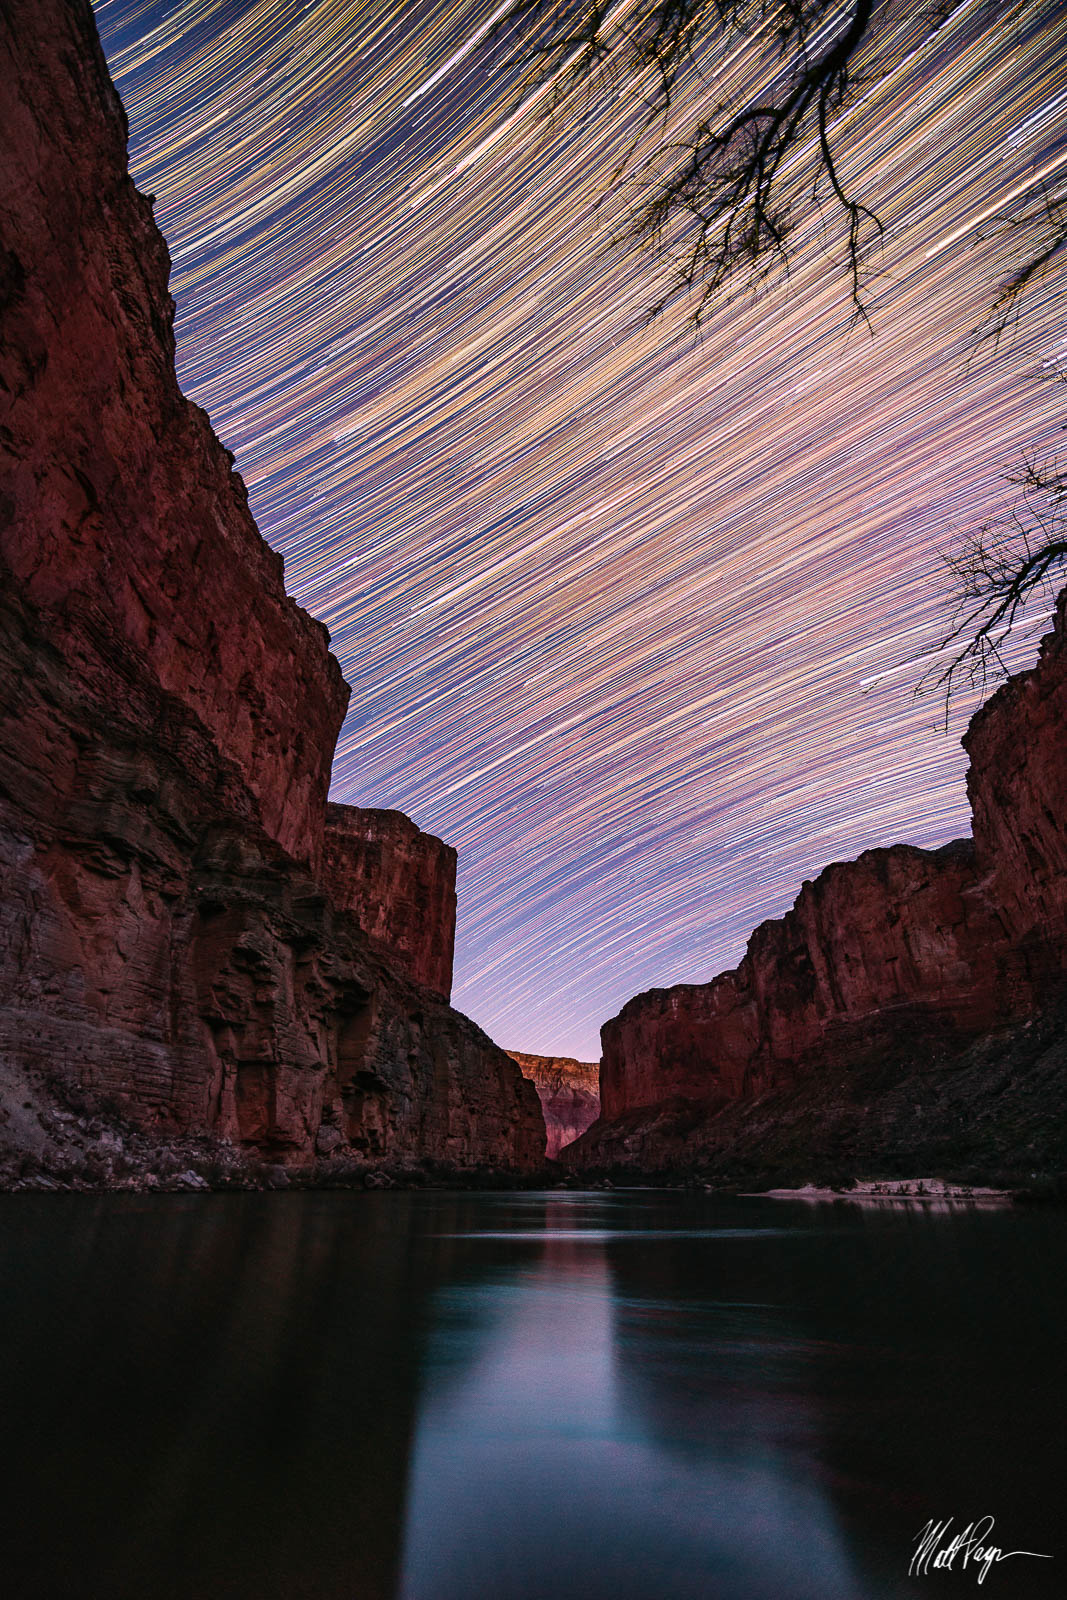 Arizona, Colorado River, Grand Canyon, Landscape, Long Exposure, Night, Rafting, Star Trails, Stars, Wonders, photo